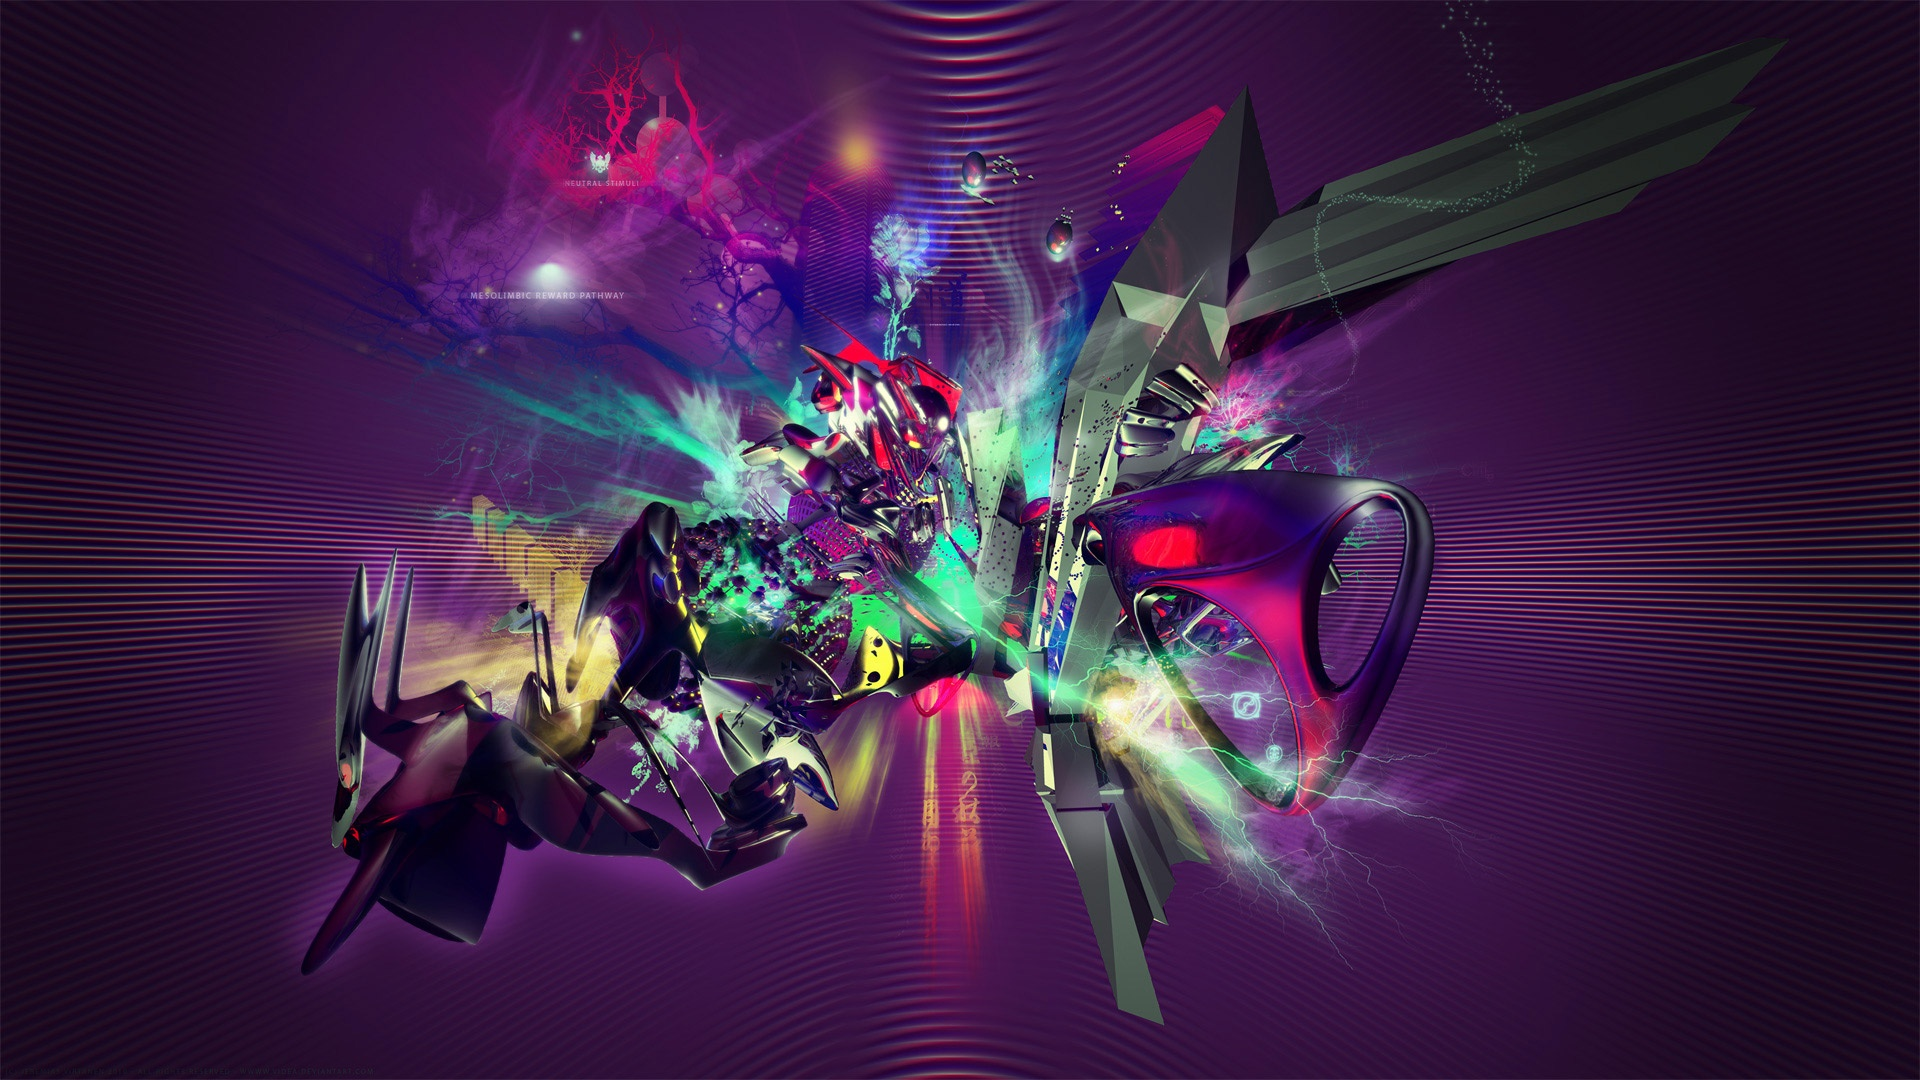 Abstract music hd wallpaper pixelstalk net - Wallpaper 1920x1080 music ...